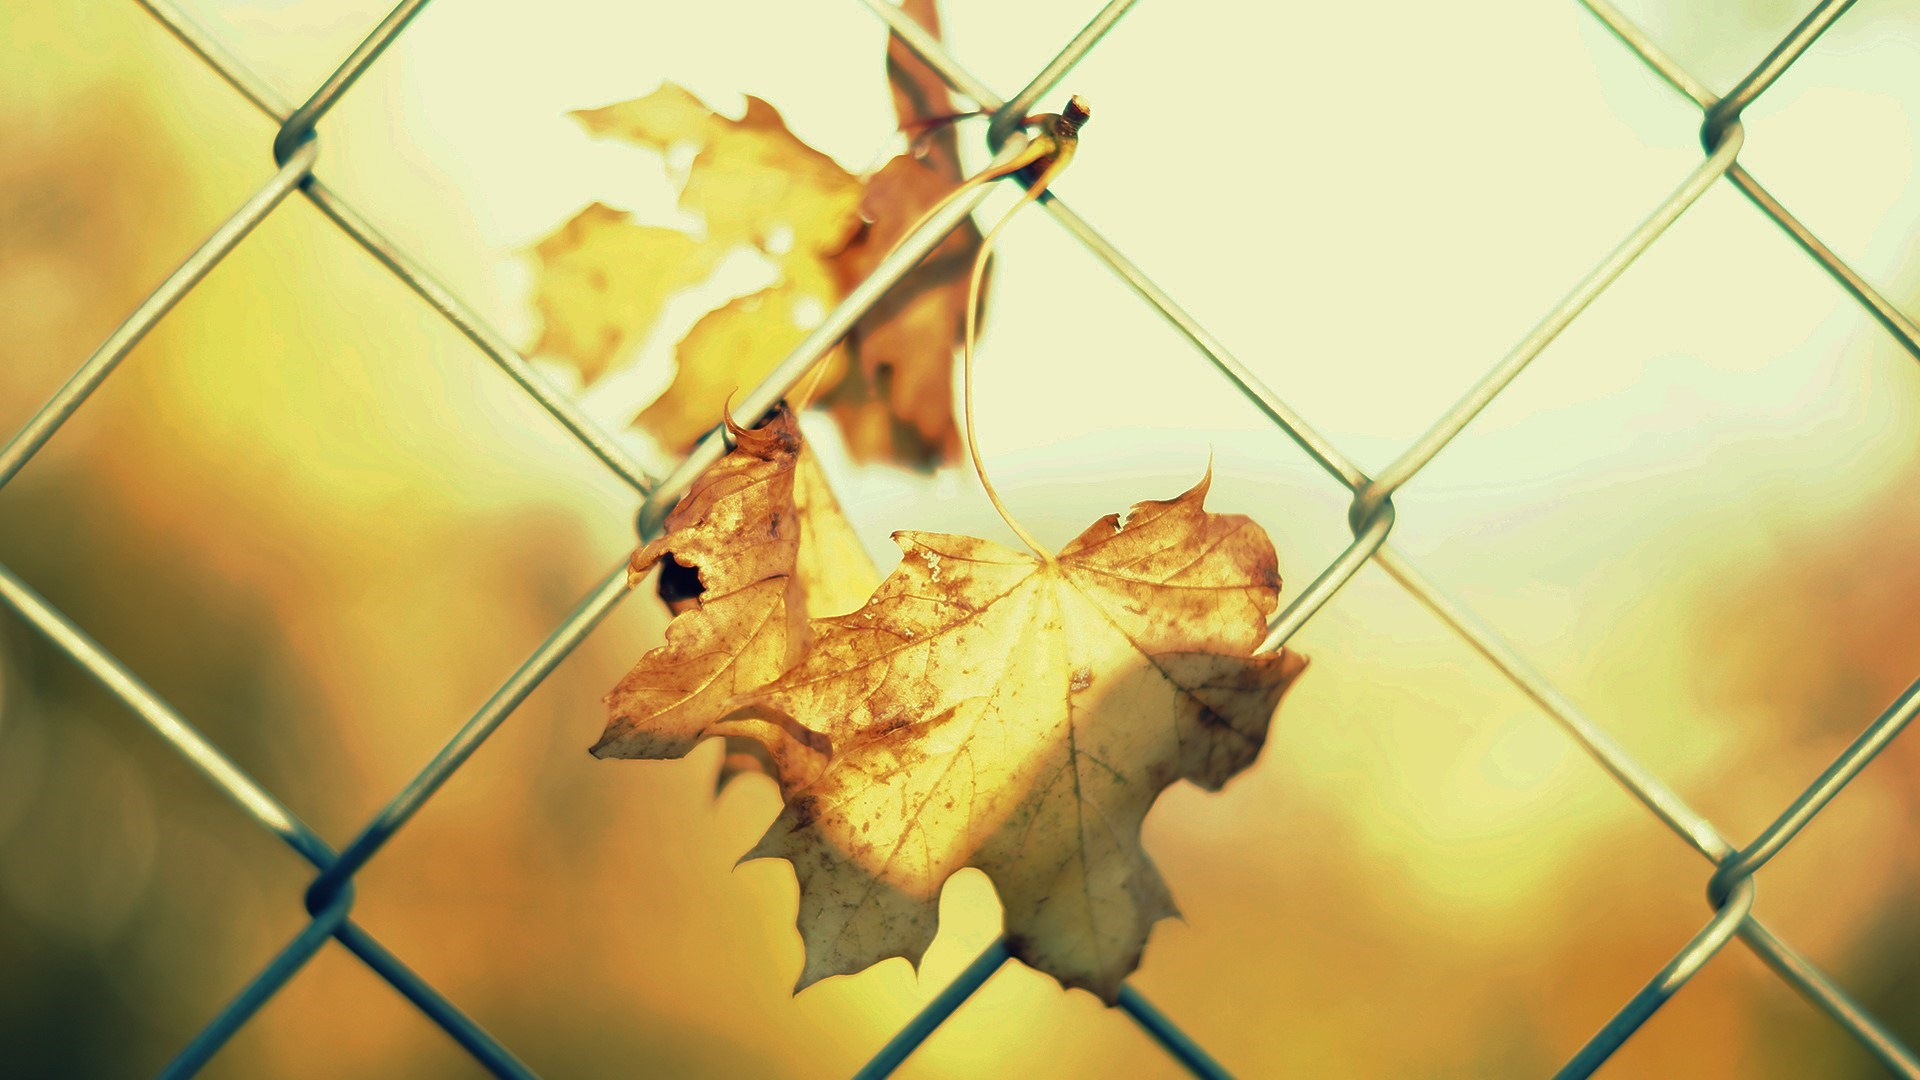 cool fence wallpaper 31684